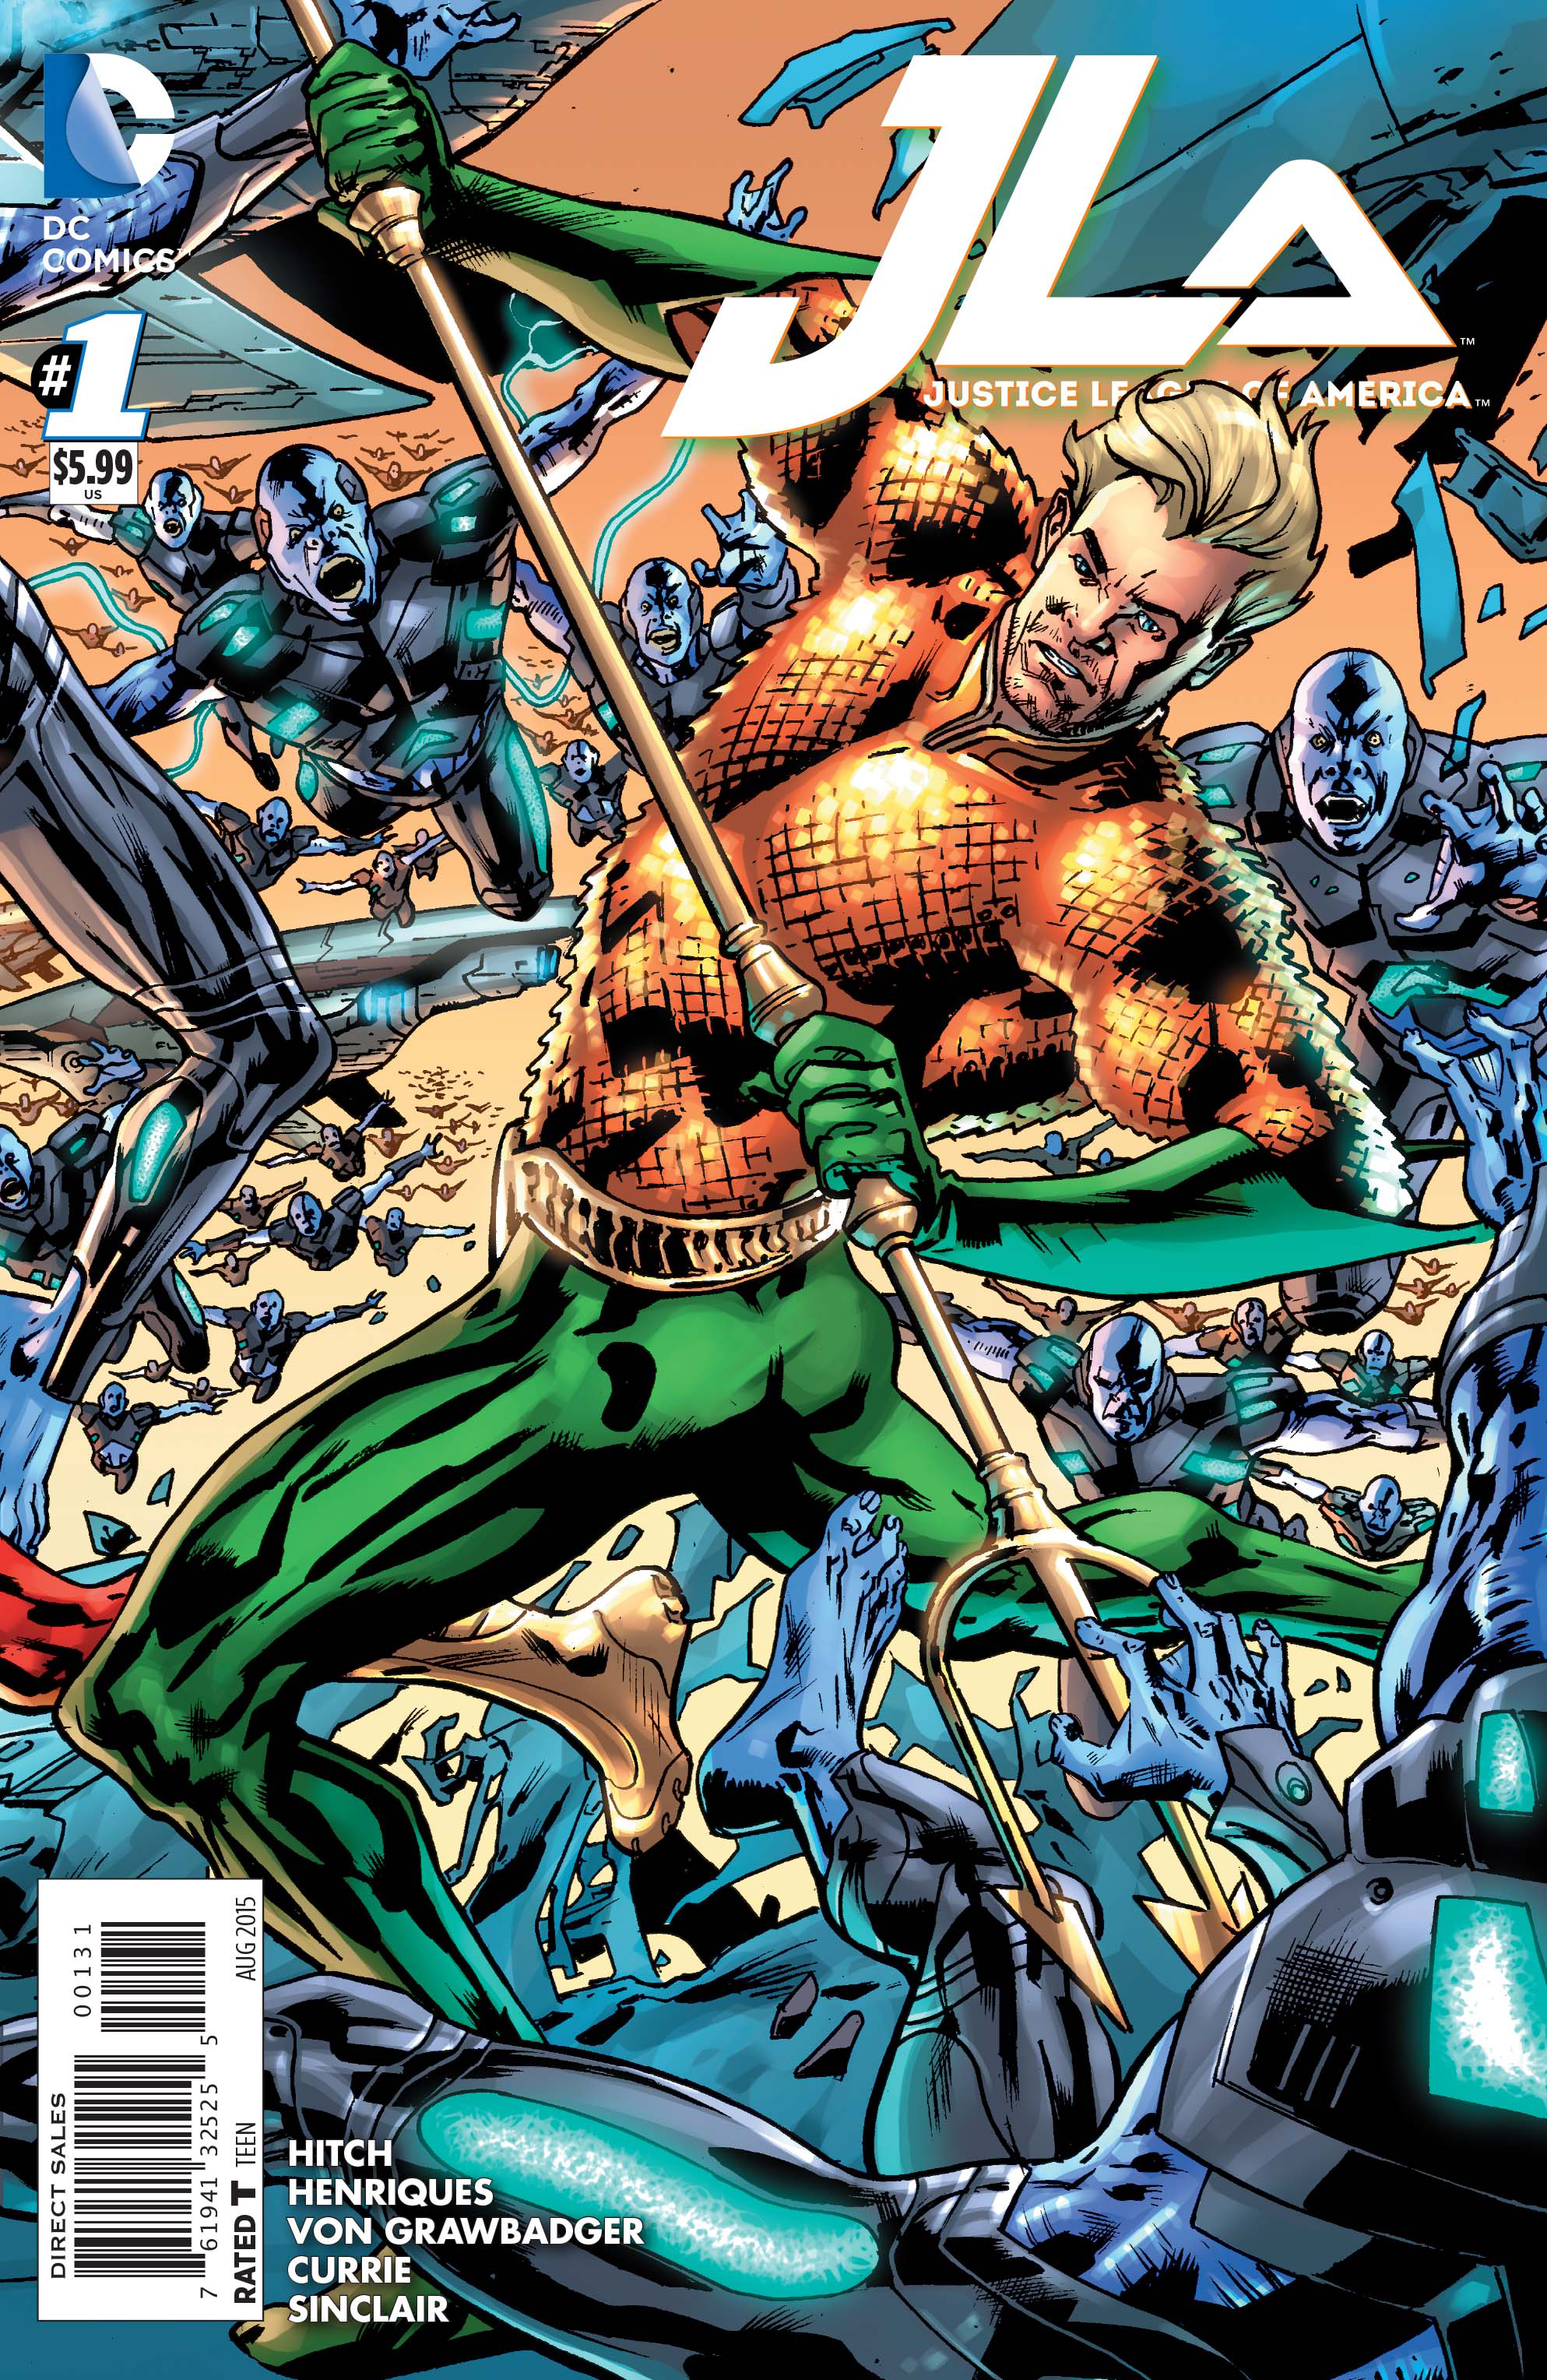 JUSTICE LEAGUE OF AMERICA #1 AQUAMAN VAR ED